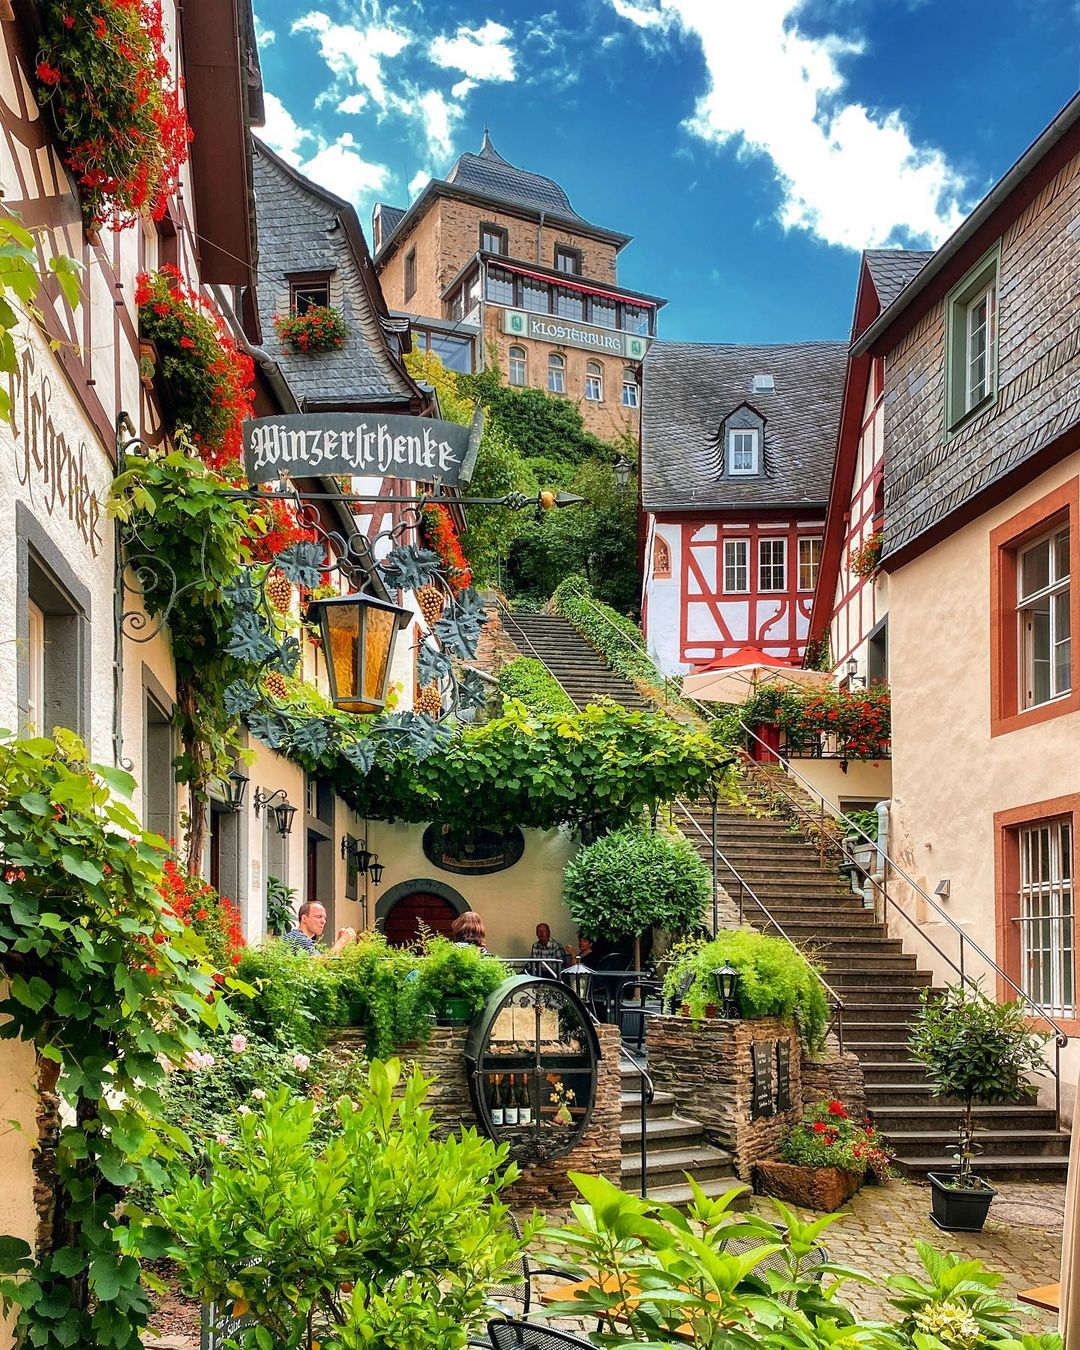 The small village of Beilstein, Rhineland-Palatinate, Germany